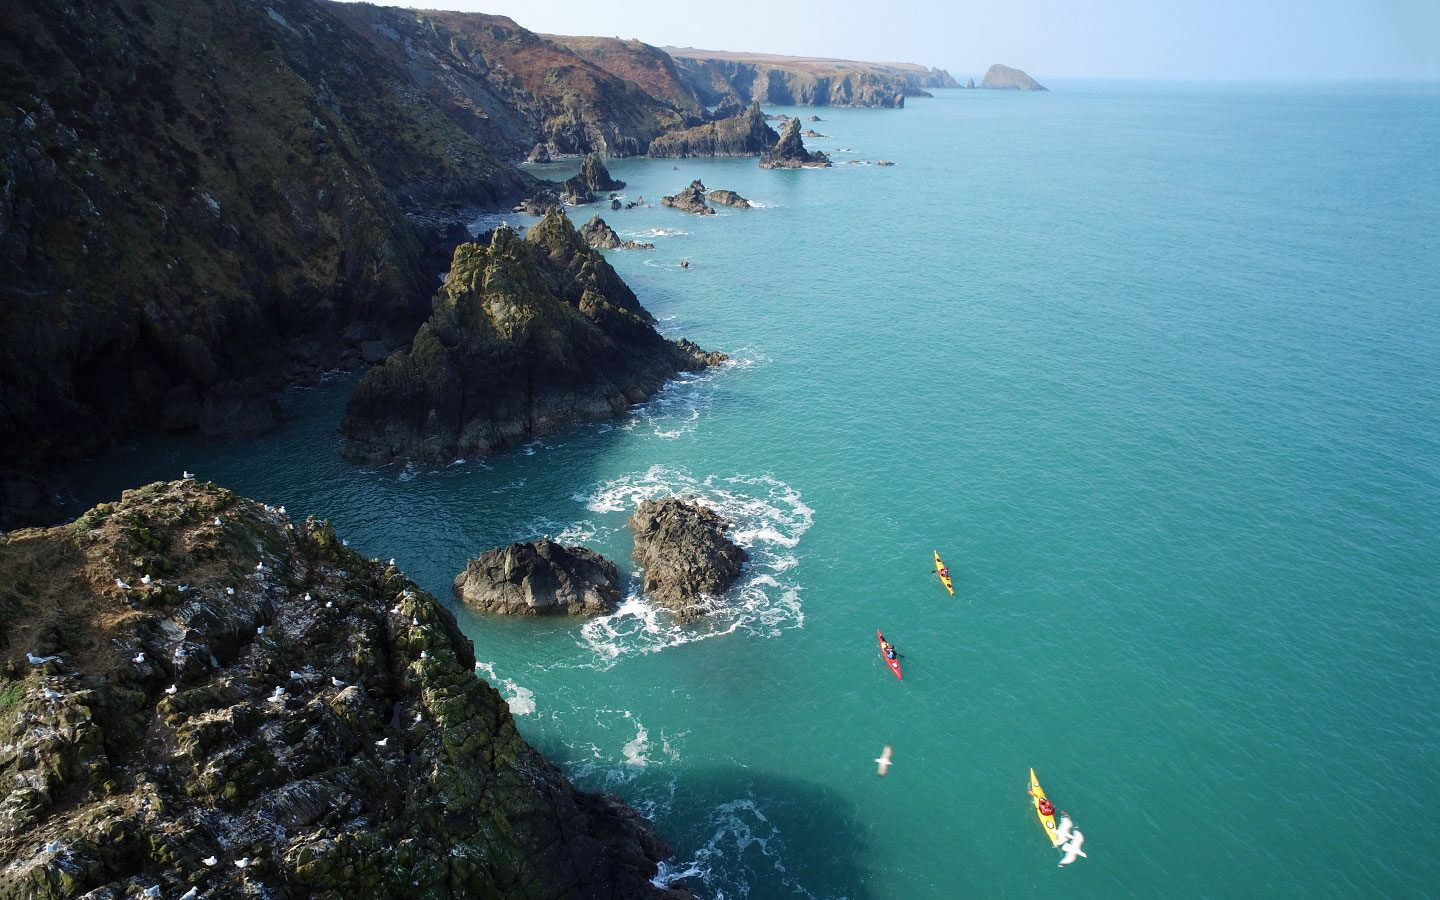 Kayaking the Pembrokeshire coast in Wales